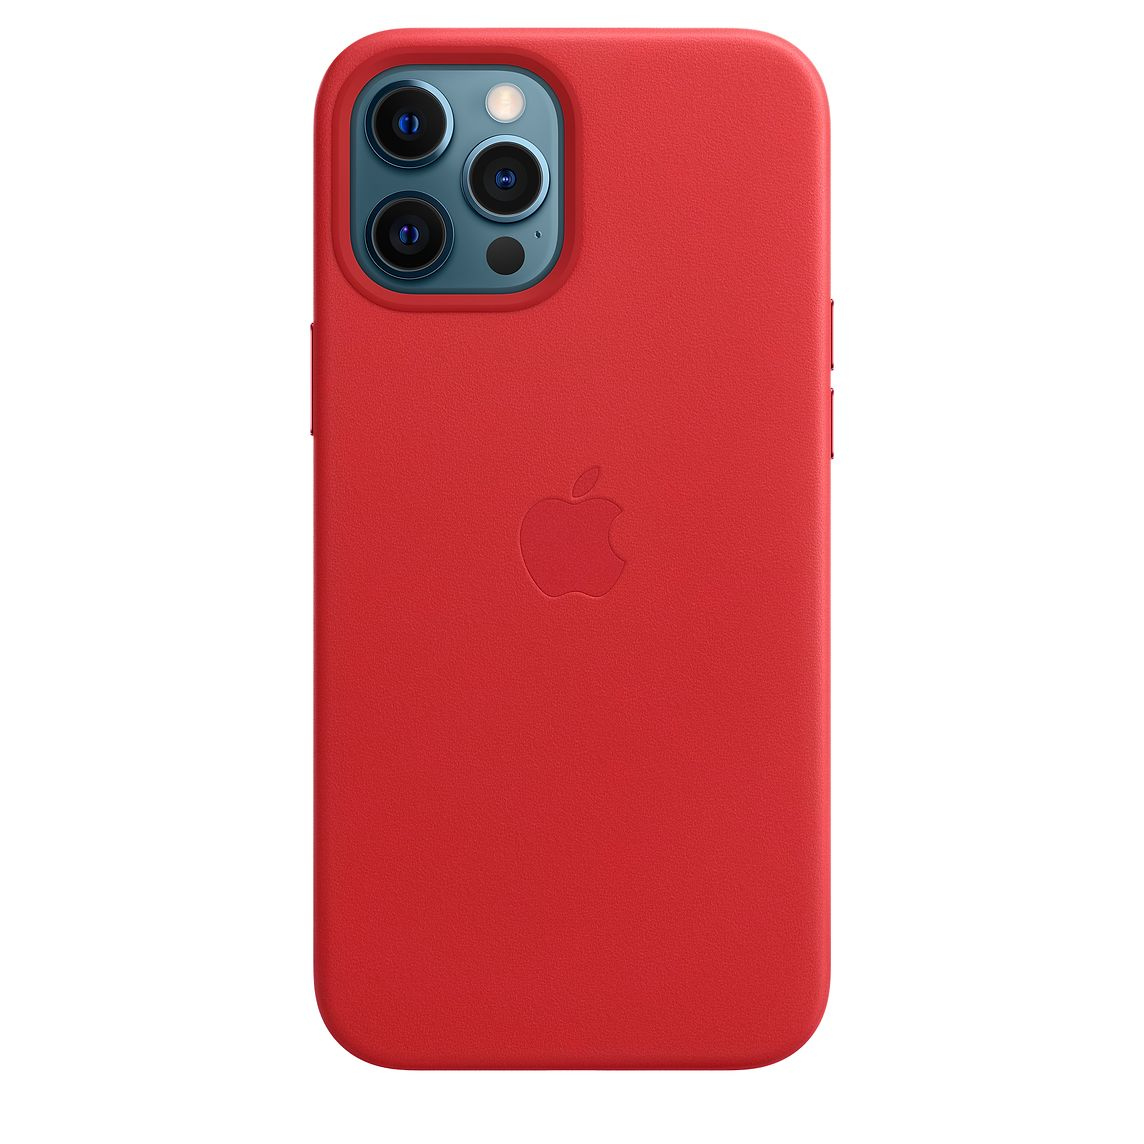 Apple iPhone 12 Pro Max Leather Case with MagSafe (PRODUCT)RED